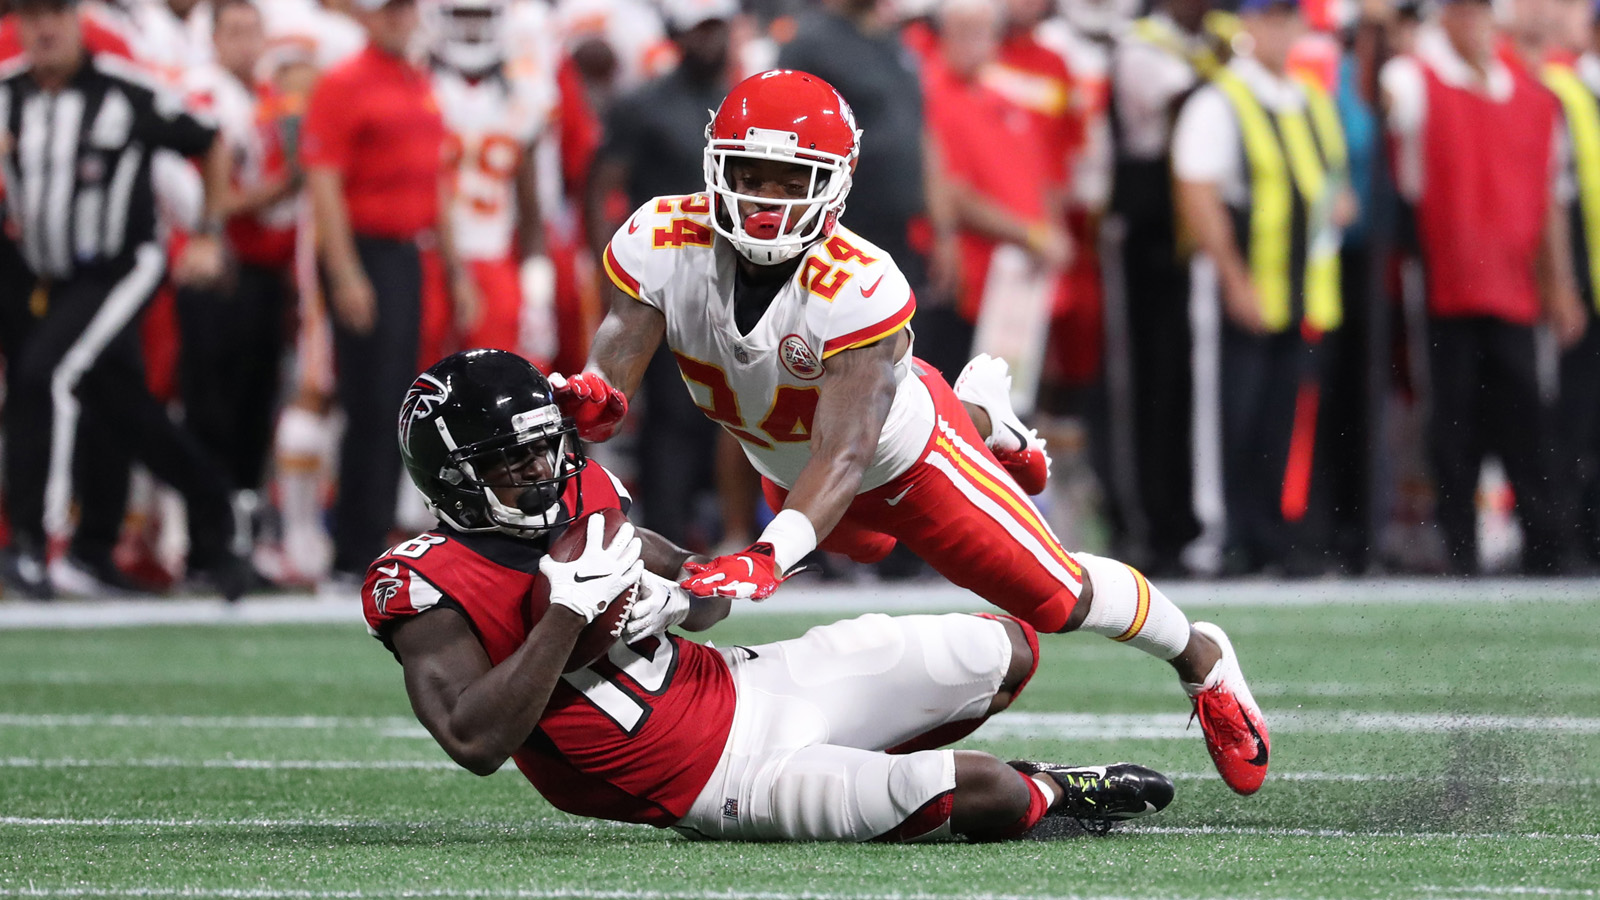 Amerson, Zombo among players let go in Chiefs' final cutdown